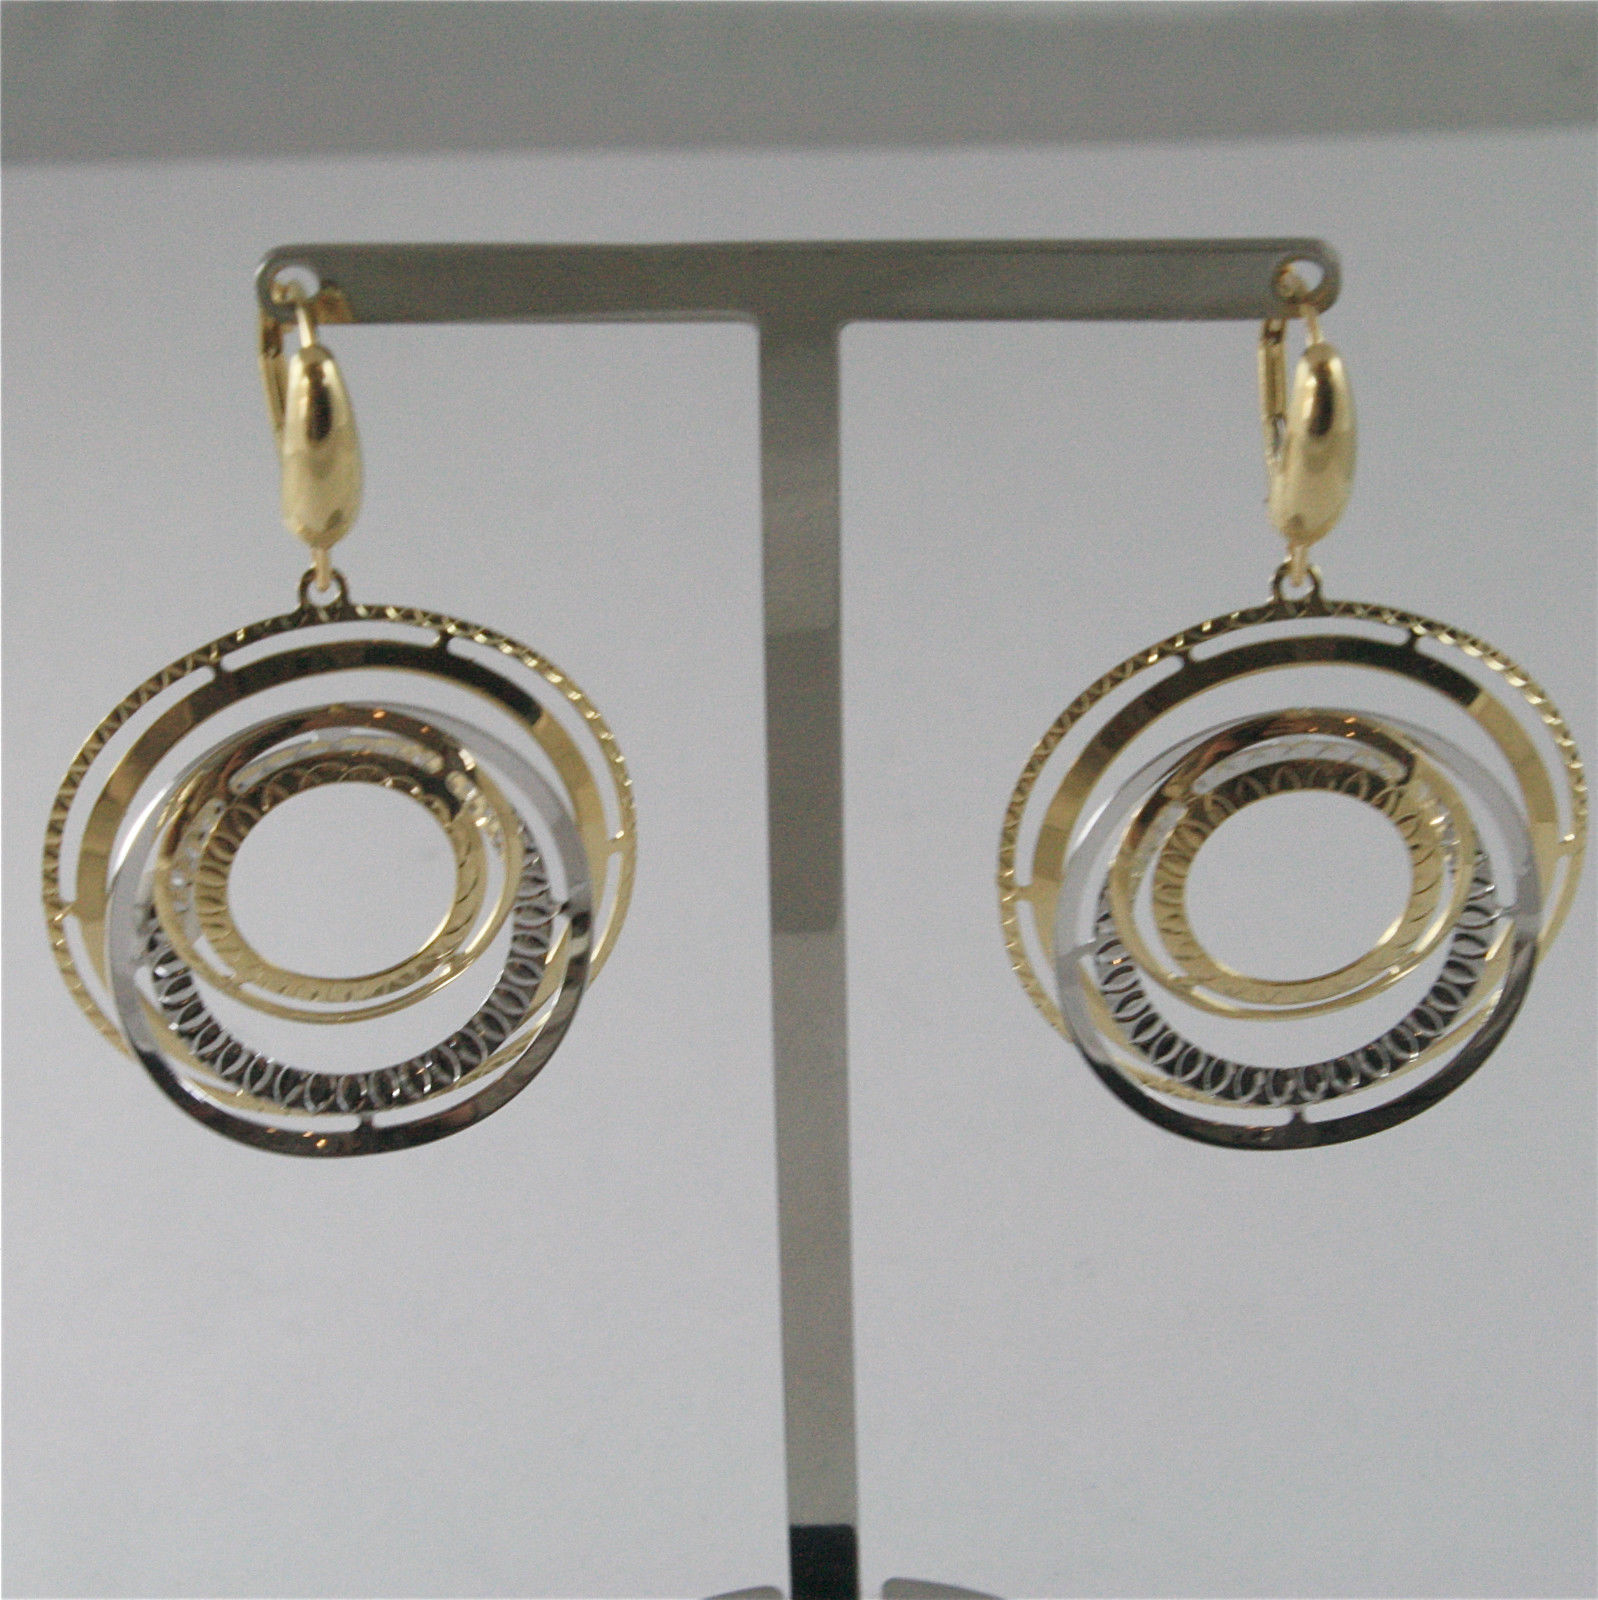 18K SOLID WHITE AND YELLOW GOLD PENDANT EARRINGS WITH CIRCLES 1.77 INCHIES LONG